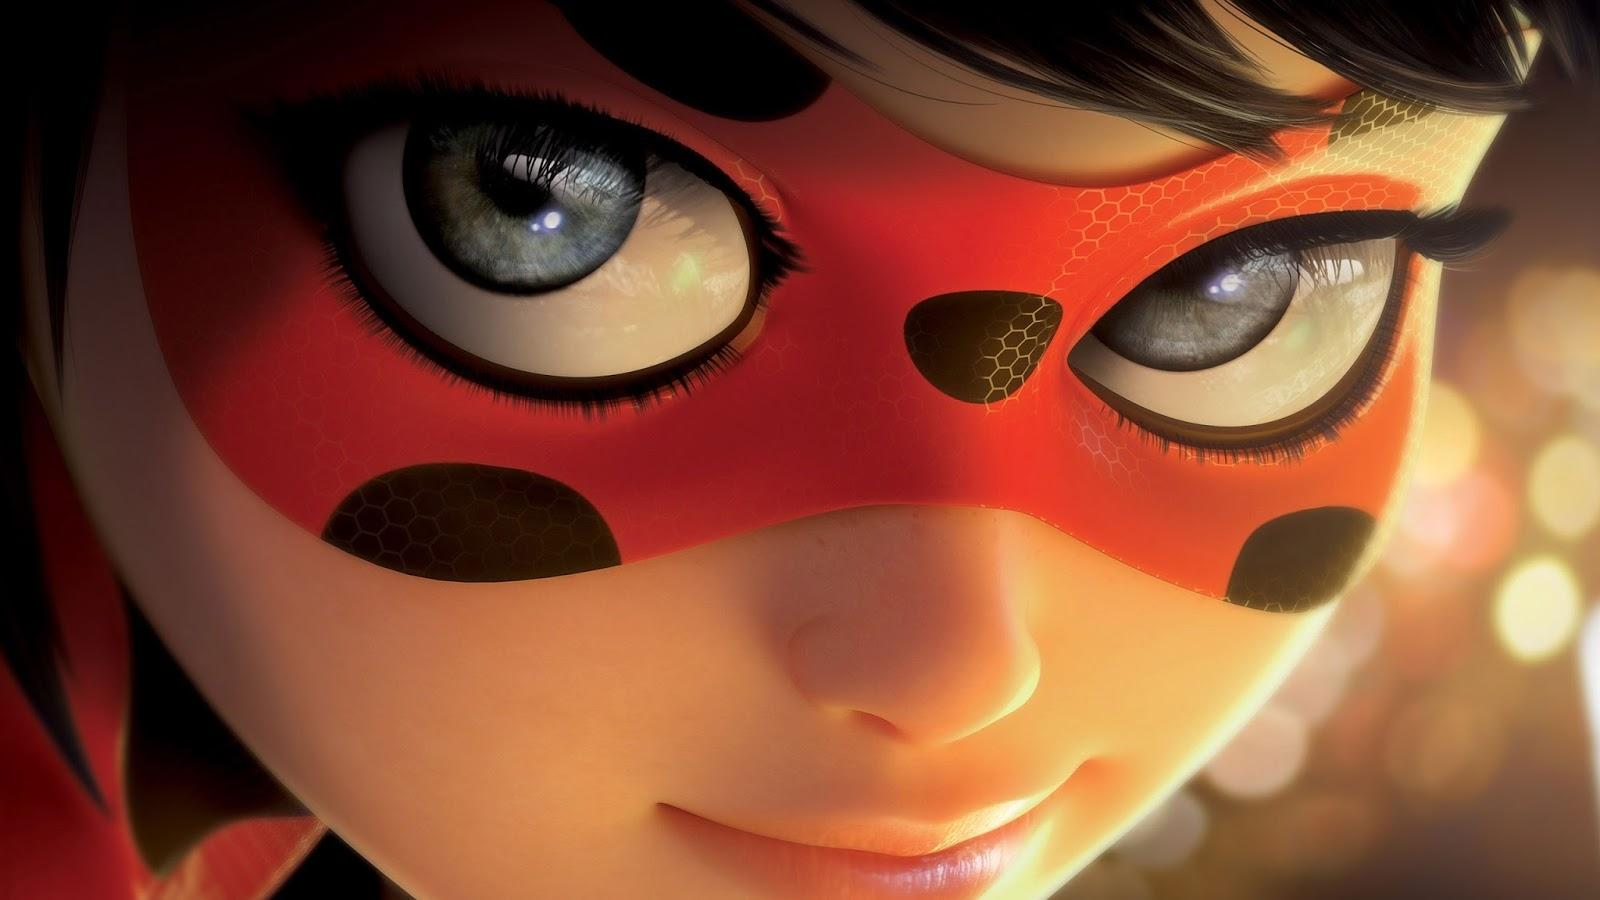 Miraculous Tales Of Ladybug and Cat Noir wallpapers HD quality